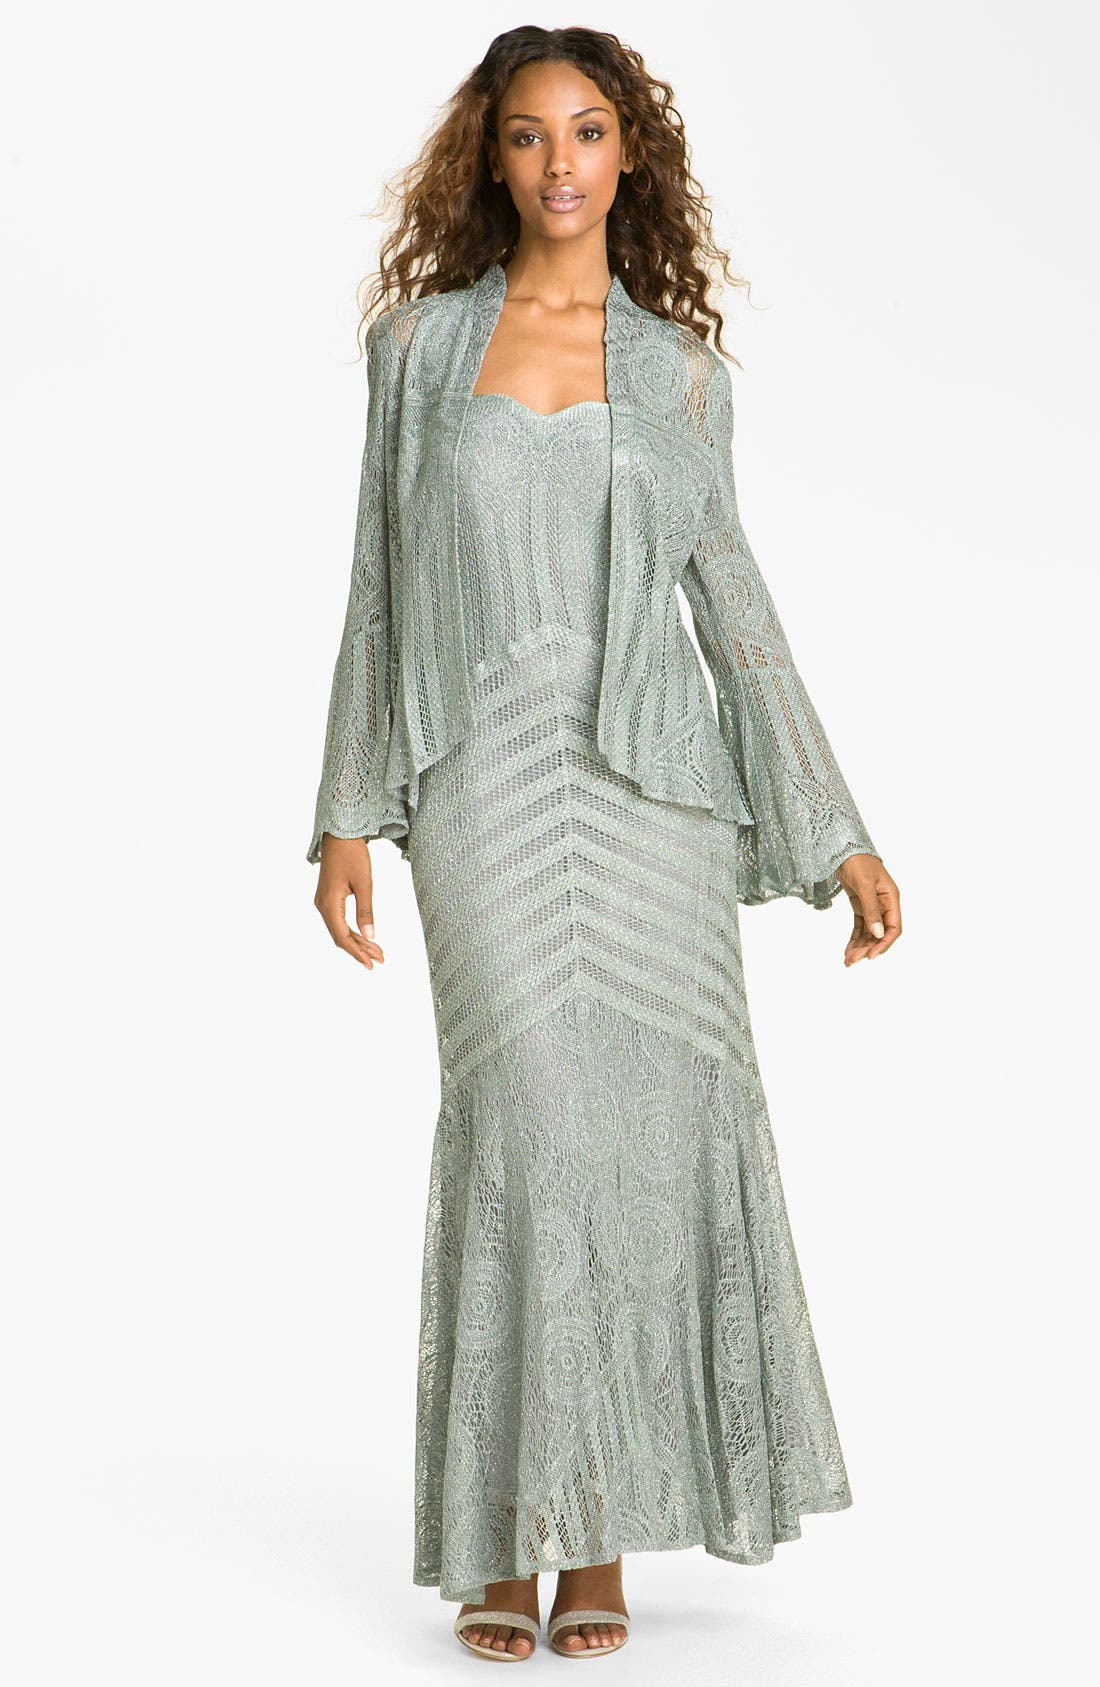 Alternate Image 1 Selected - Damianou 'Circles' Metallic Knit Gown & Jacket